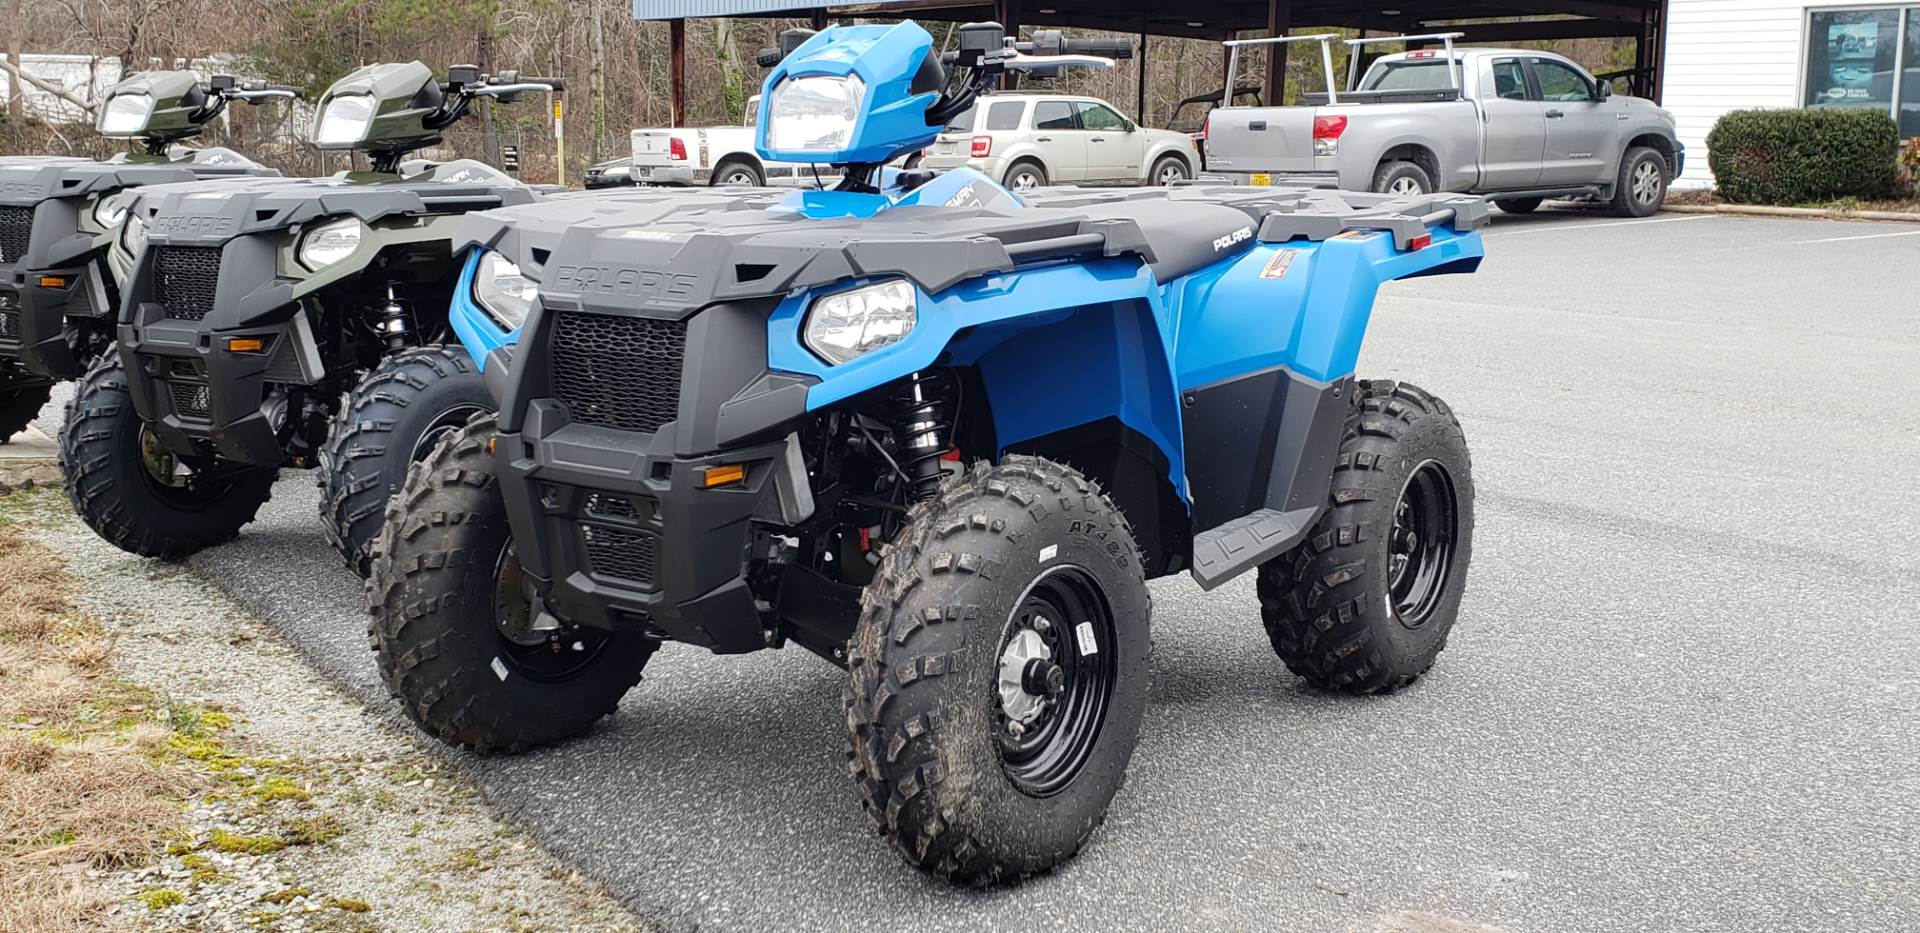 2019 Polaris Sportsman 570 in Hayes, Virginia - Photo 2